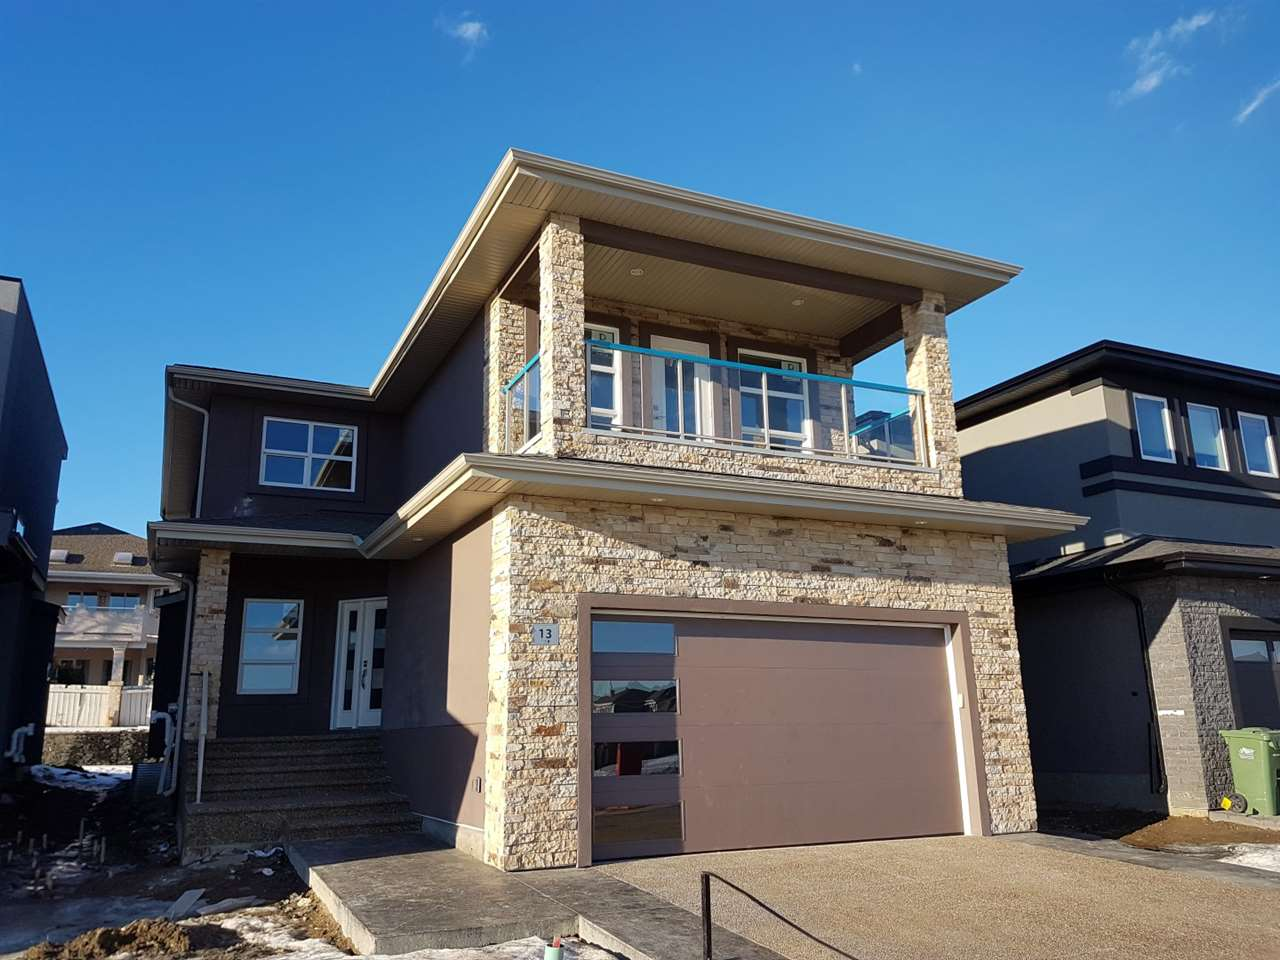 Main Photo: 13 ORCHARD Court: St. Albert House for sale : MLS(r) # E4059150